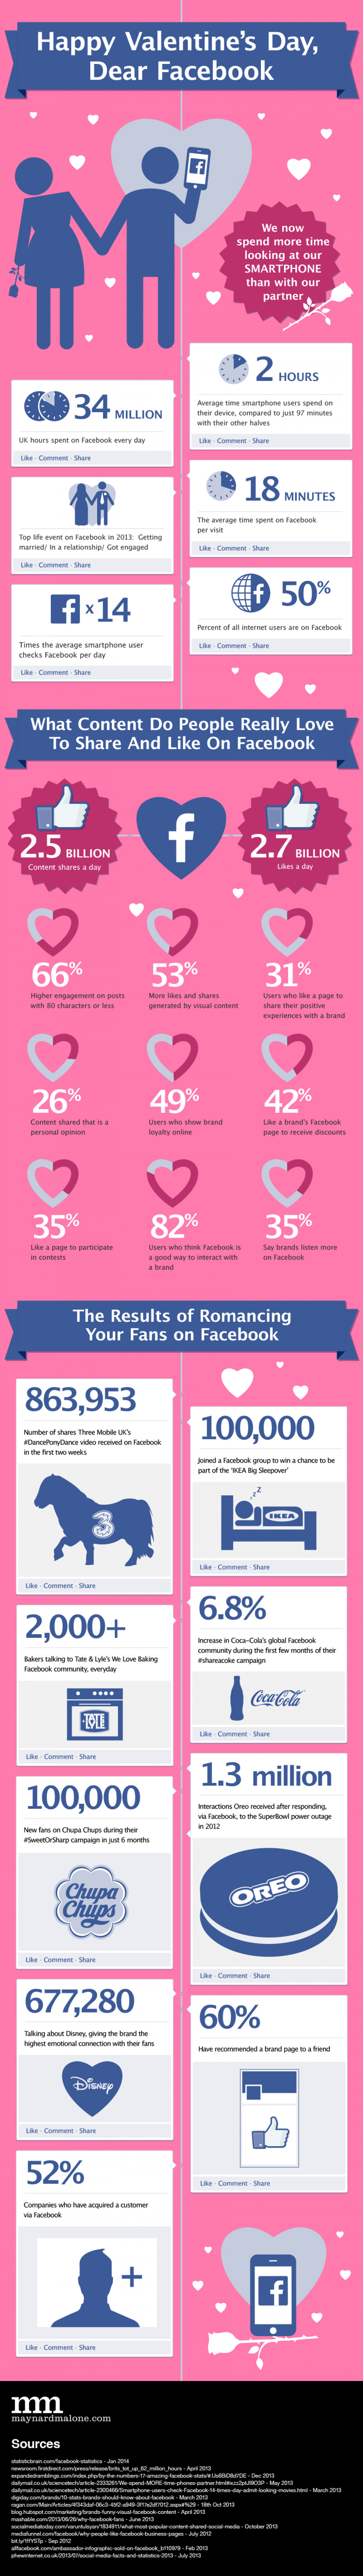 Happy Valentine's Day, Dear Facebook Infographic